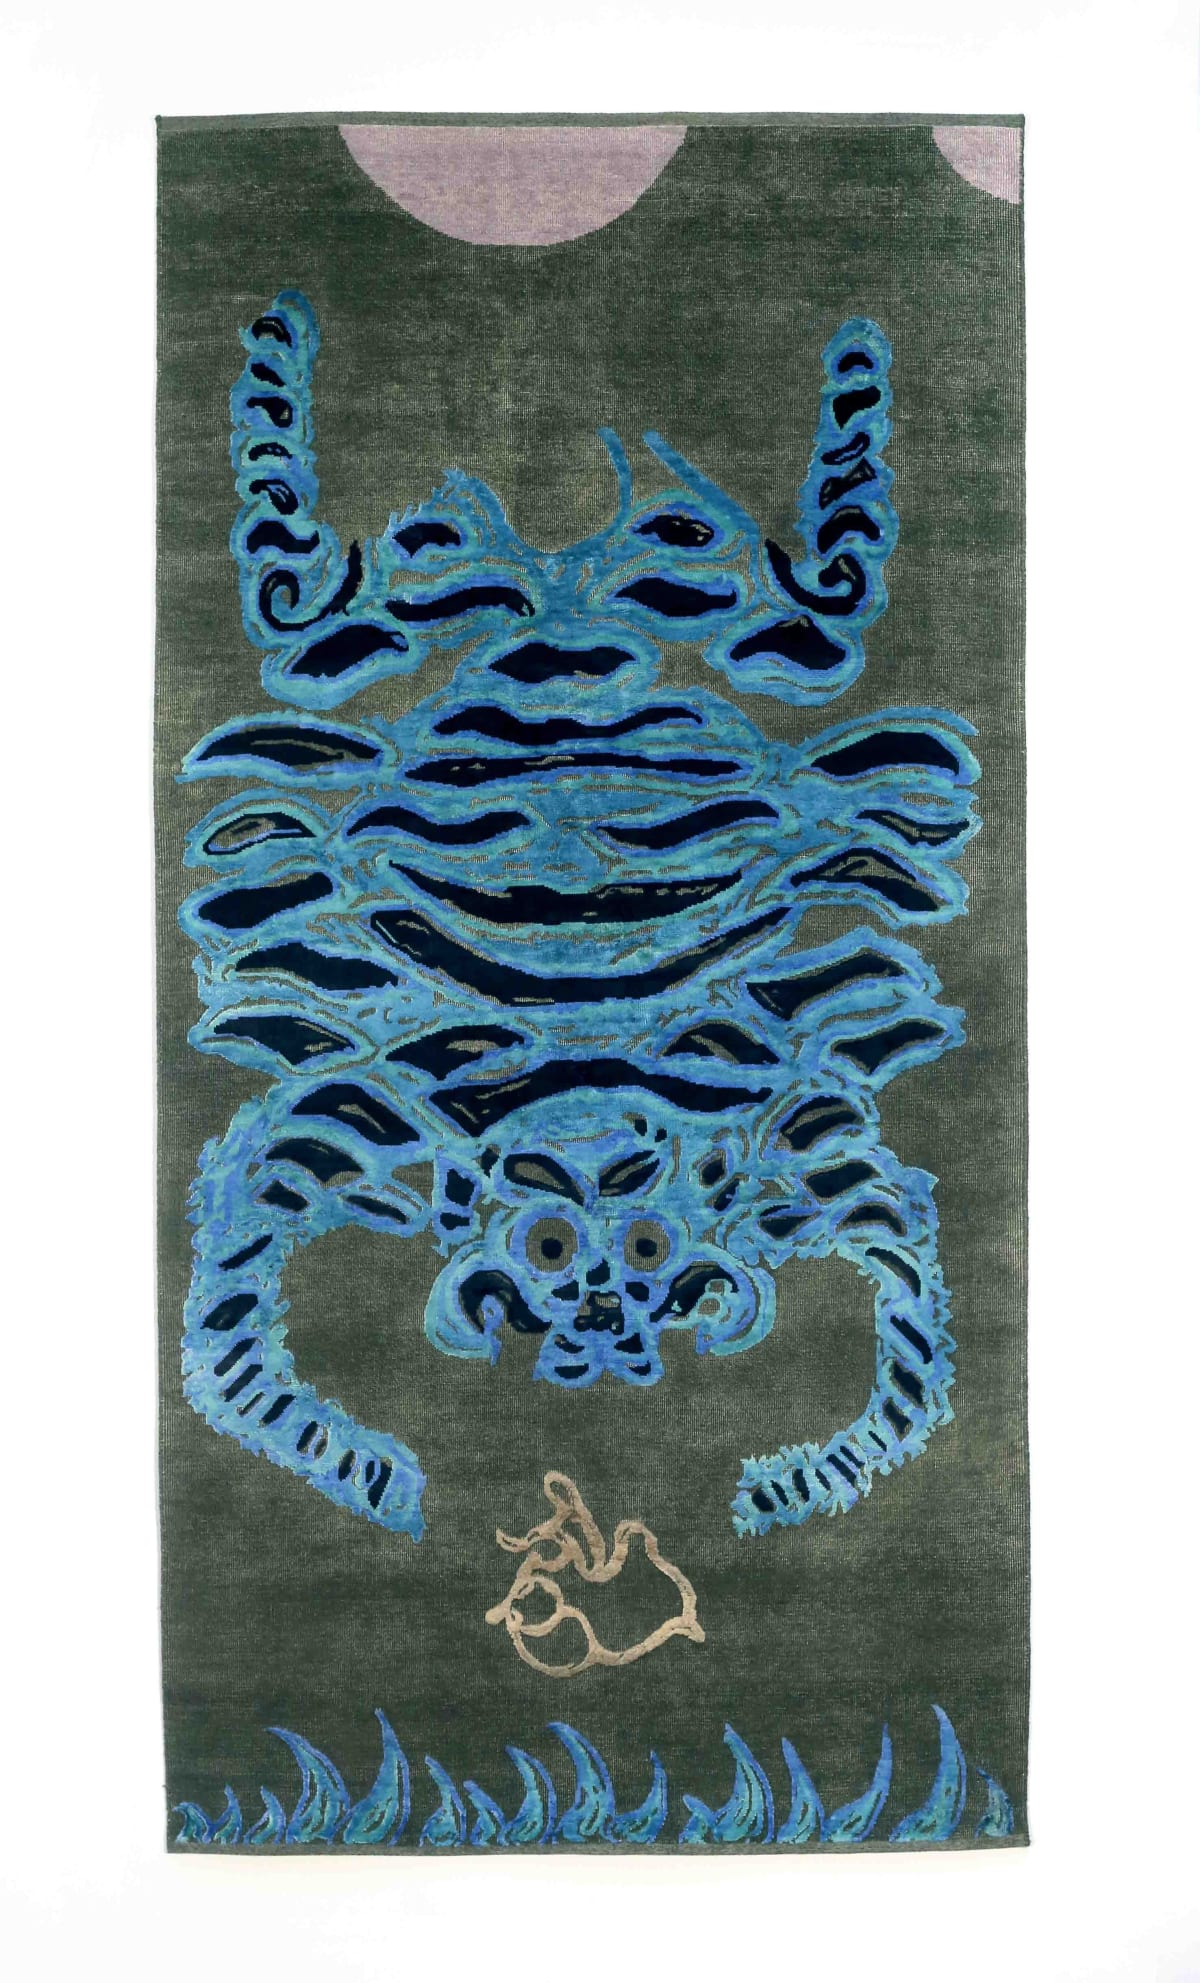 Gary Hume, Water Tiger, 2018-2019